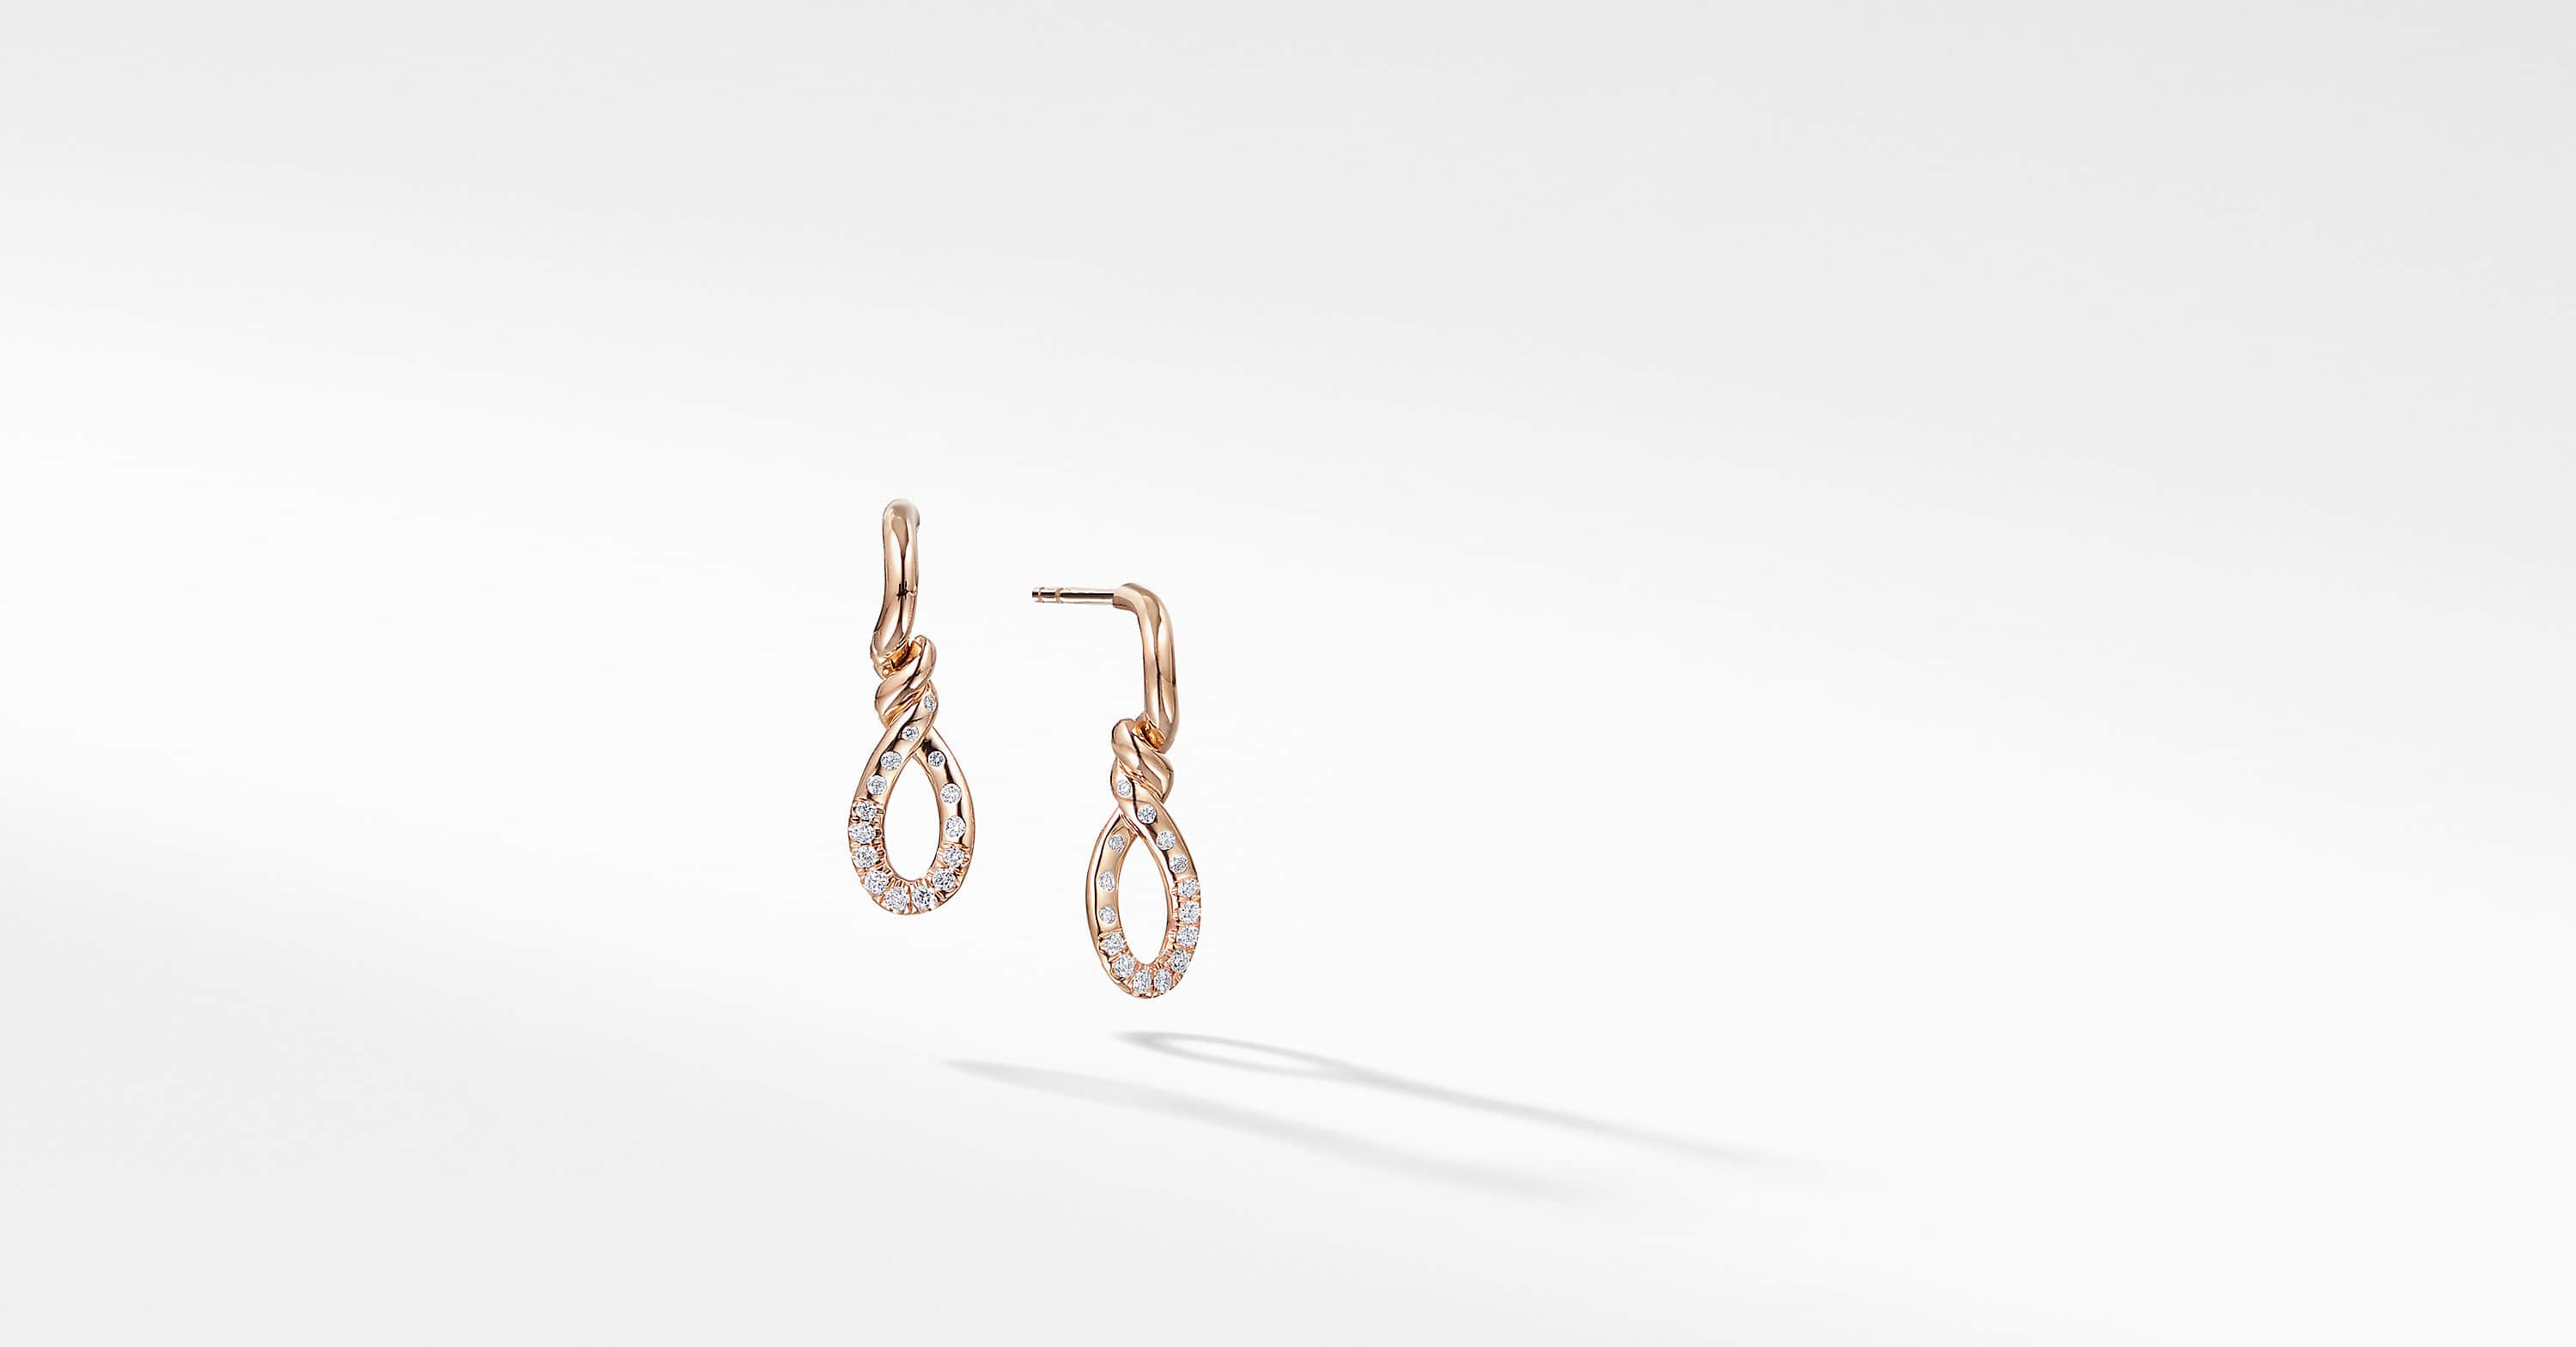 Continuance Small Drop Earrings with Diamonds in 18K Rose Gold